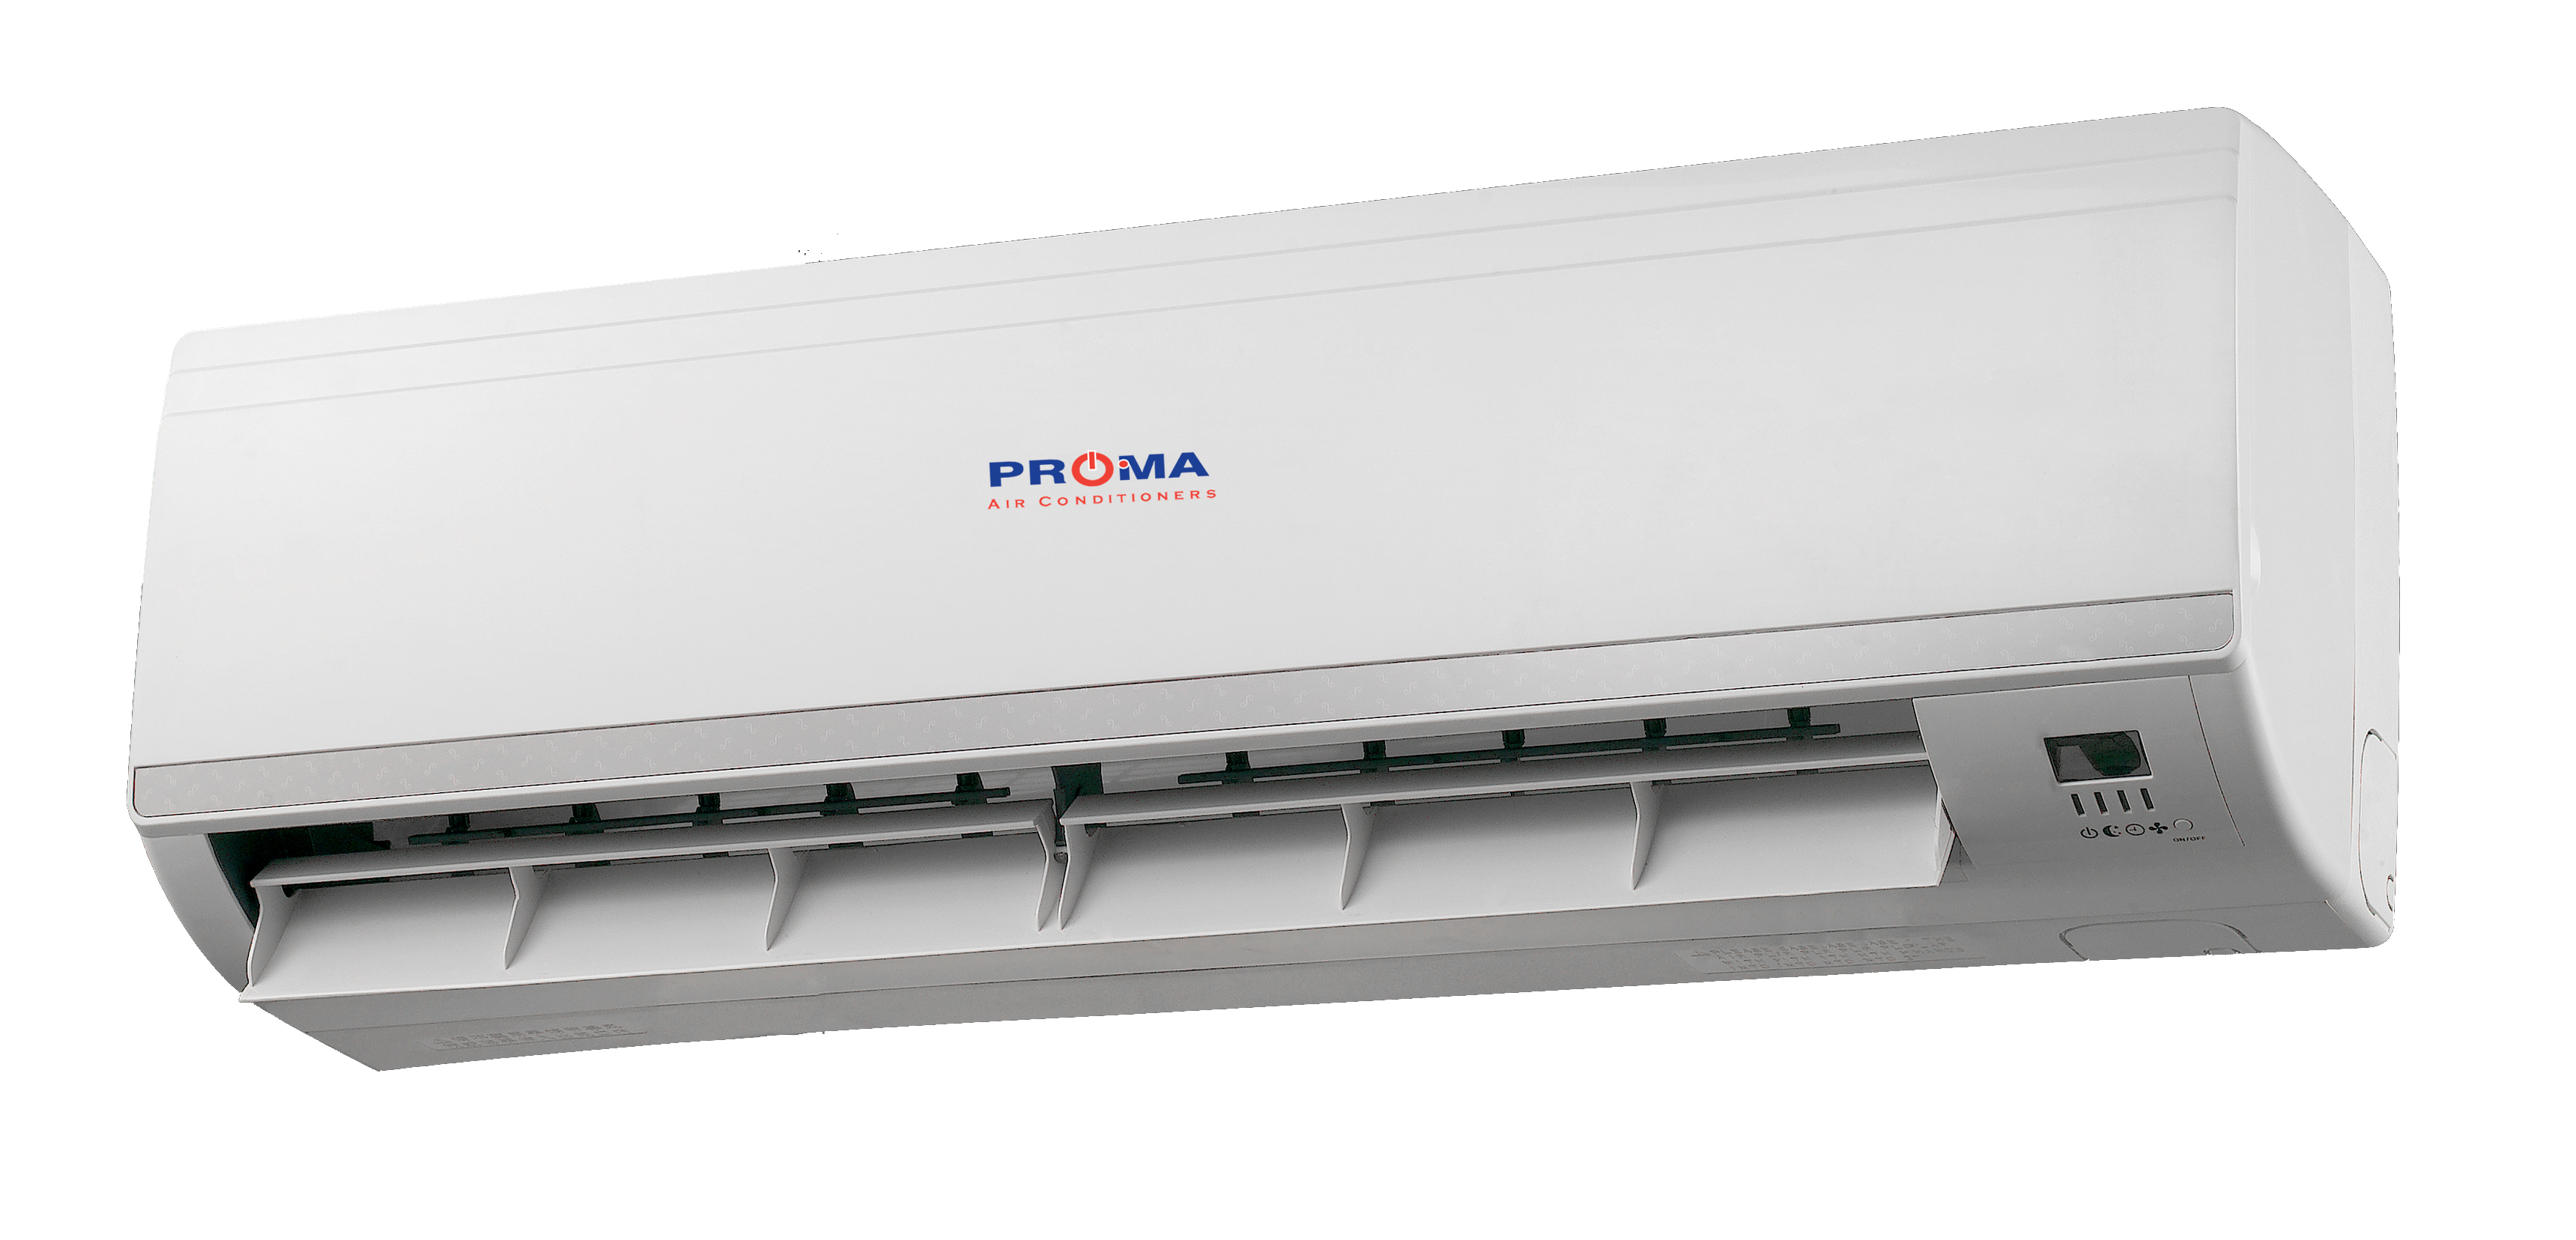 PRO 70T 7kw Cooling 7kw Heating #1B3D93